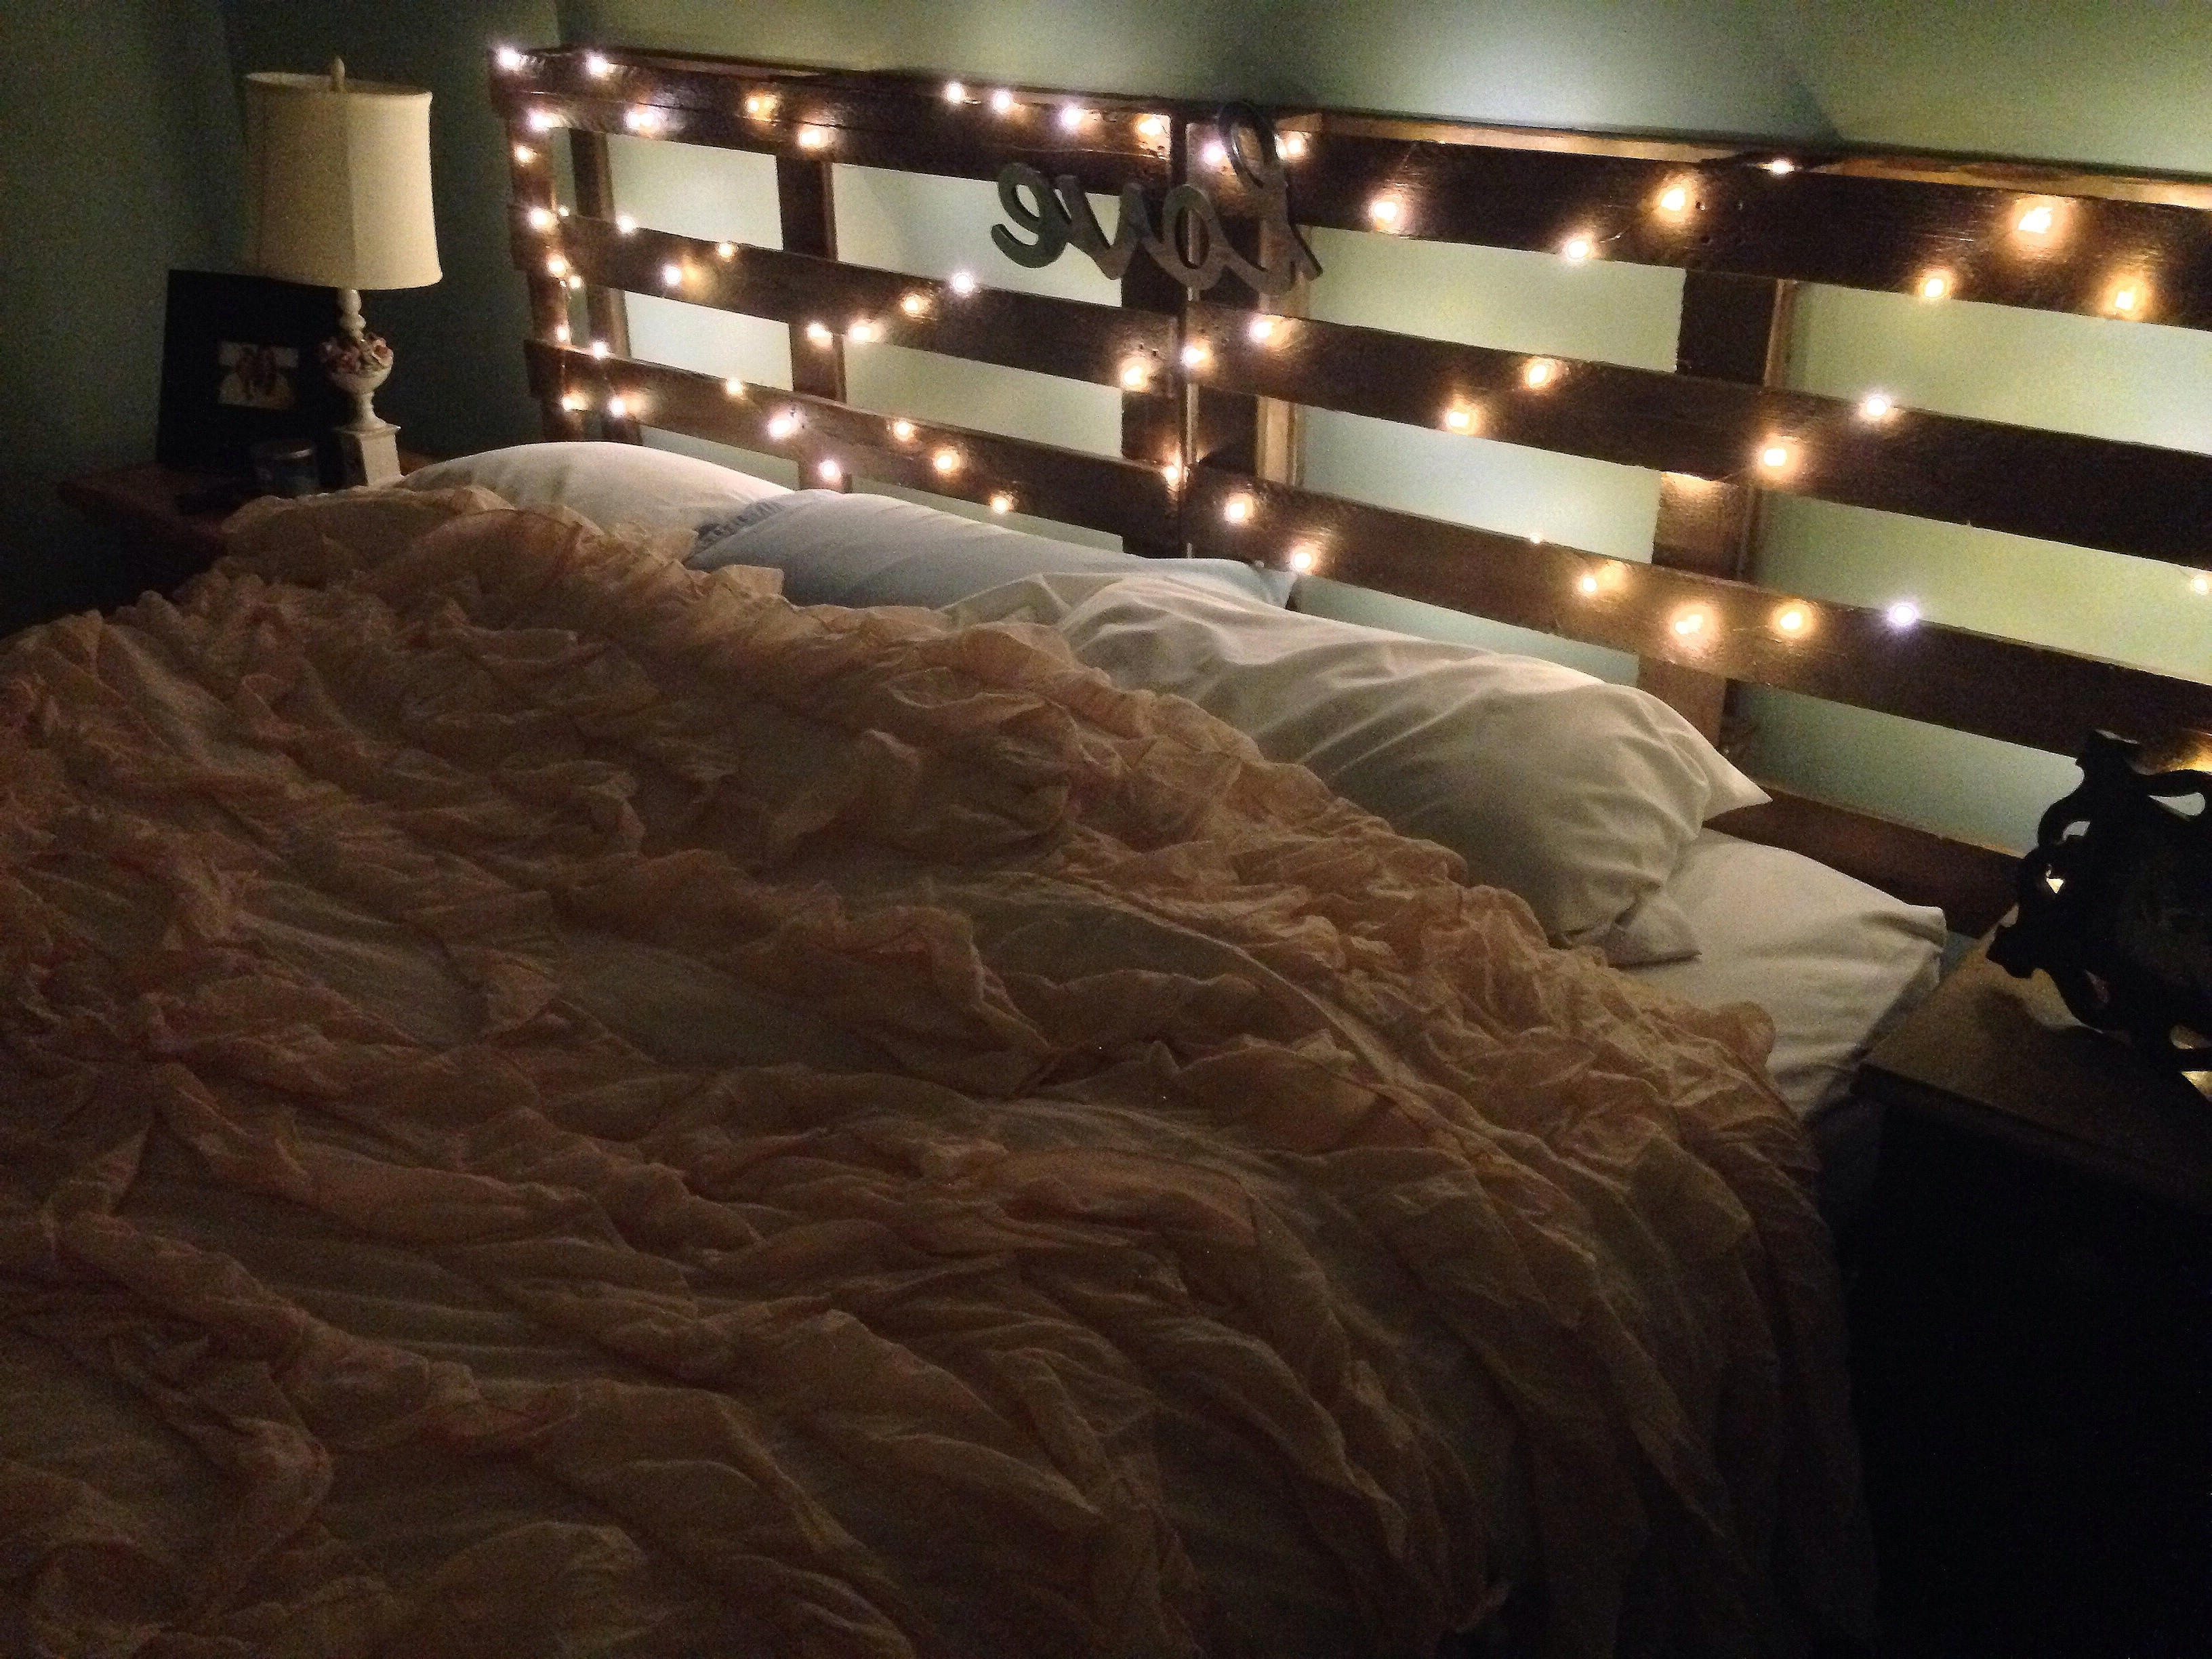 Widely Used Picture 2 Of 28 – Room Decor Lights Inspirational Bedroom How To Intended For Hanging Outdoor Lights Without Nails (View 6 of 20)